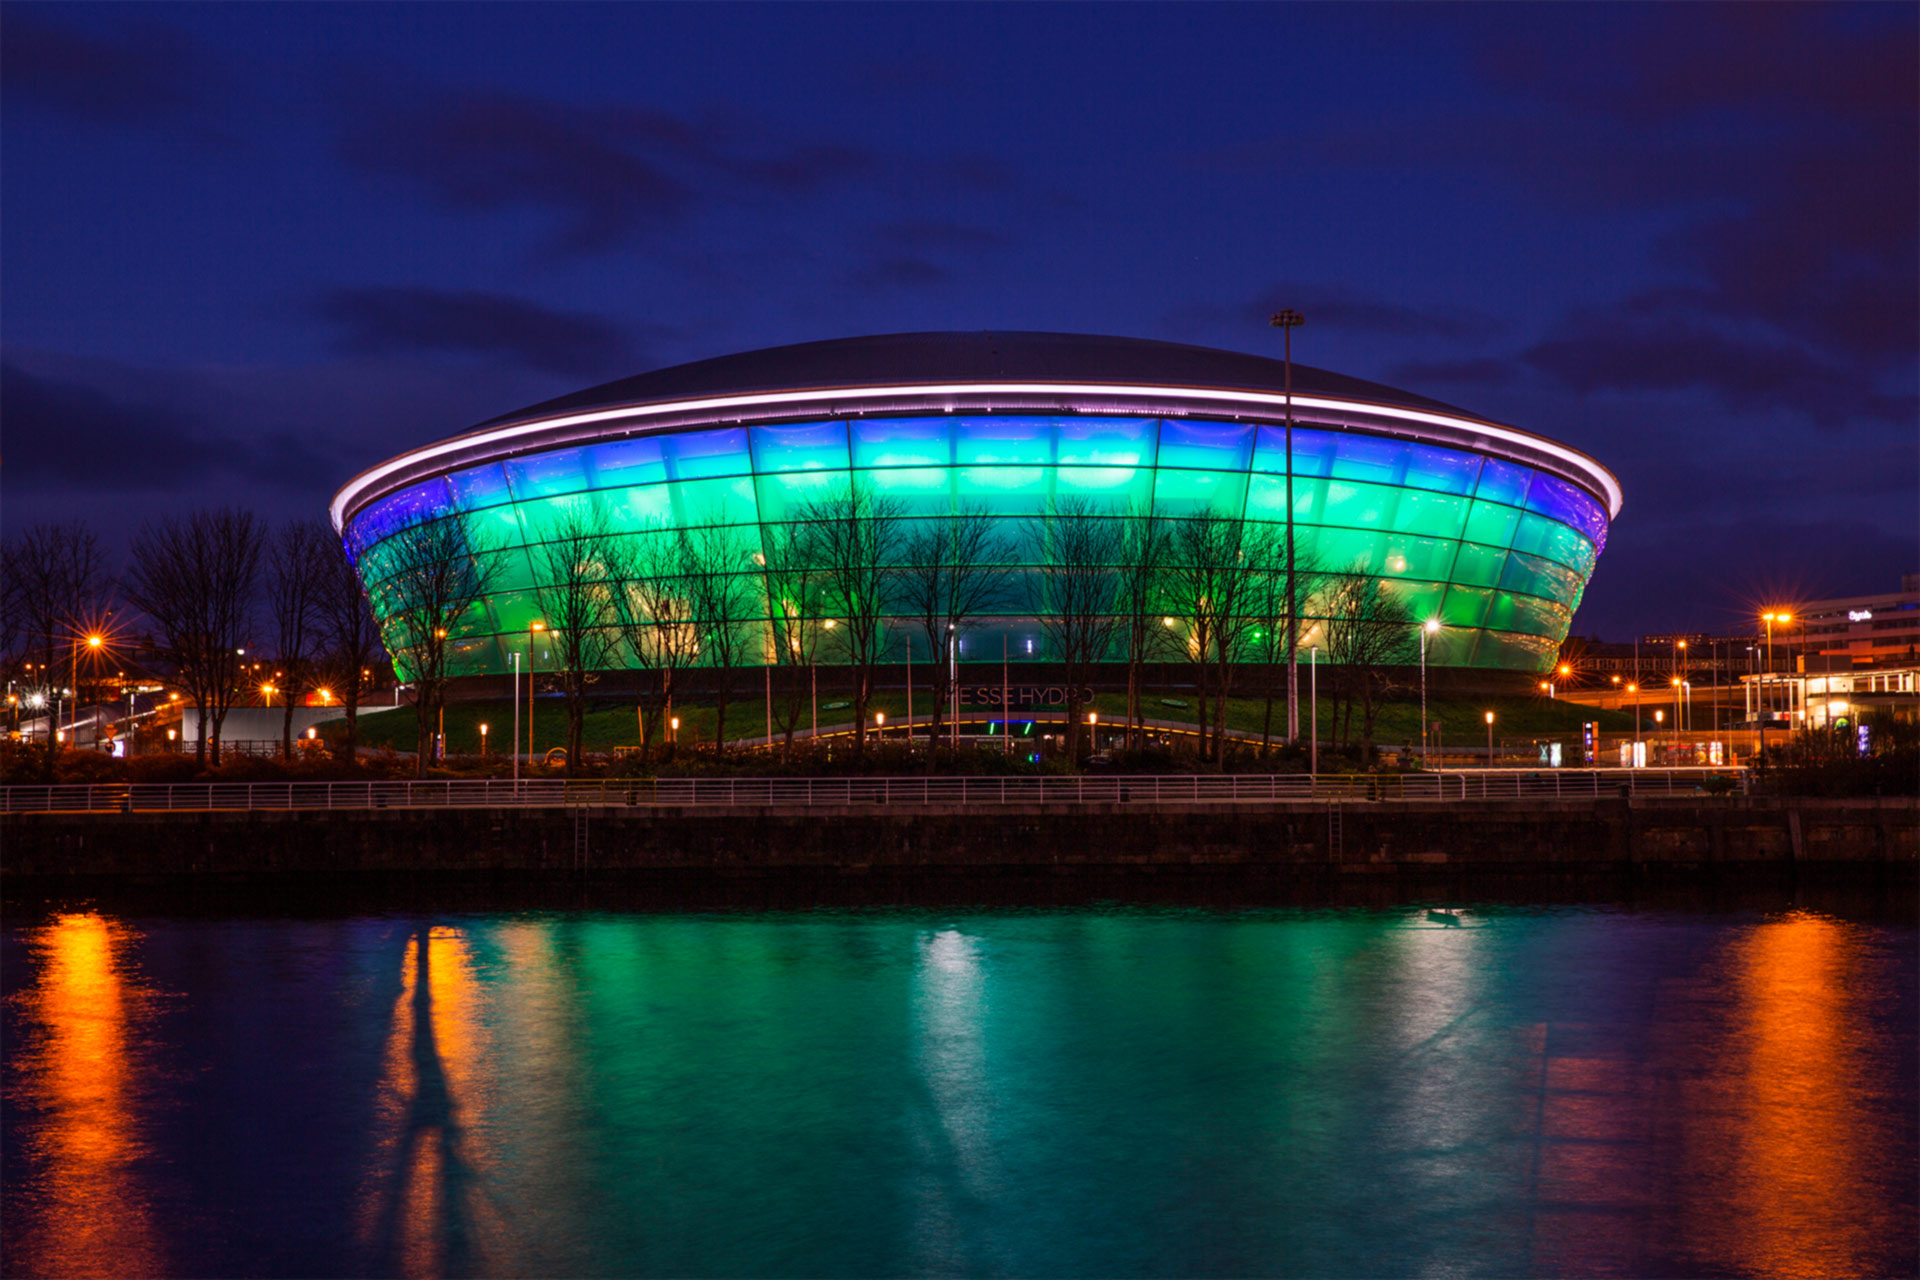 The multi-purpose SSE Hydro Arena